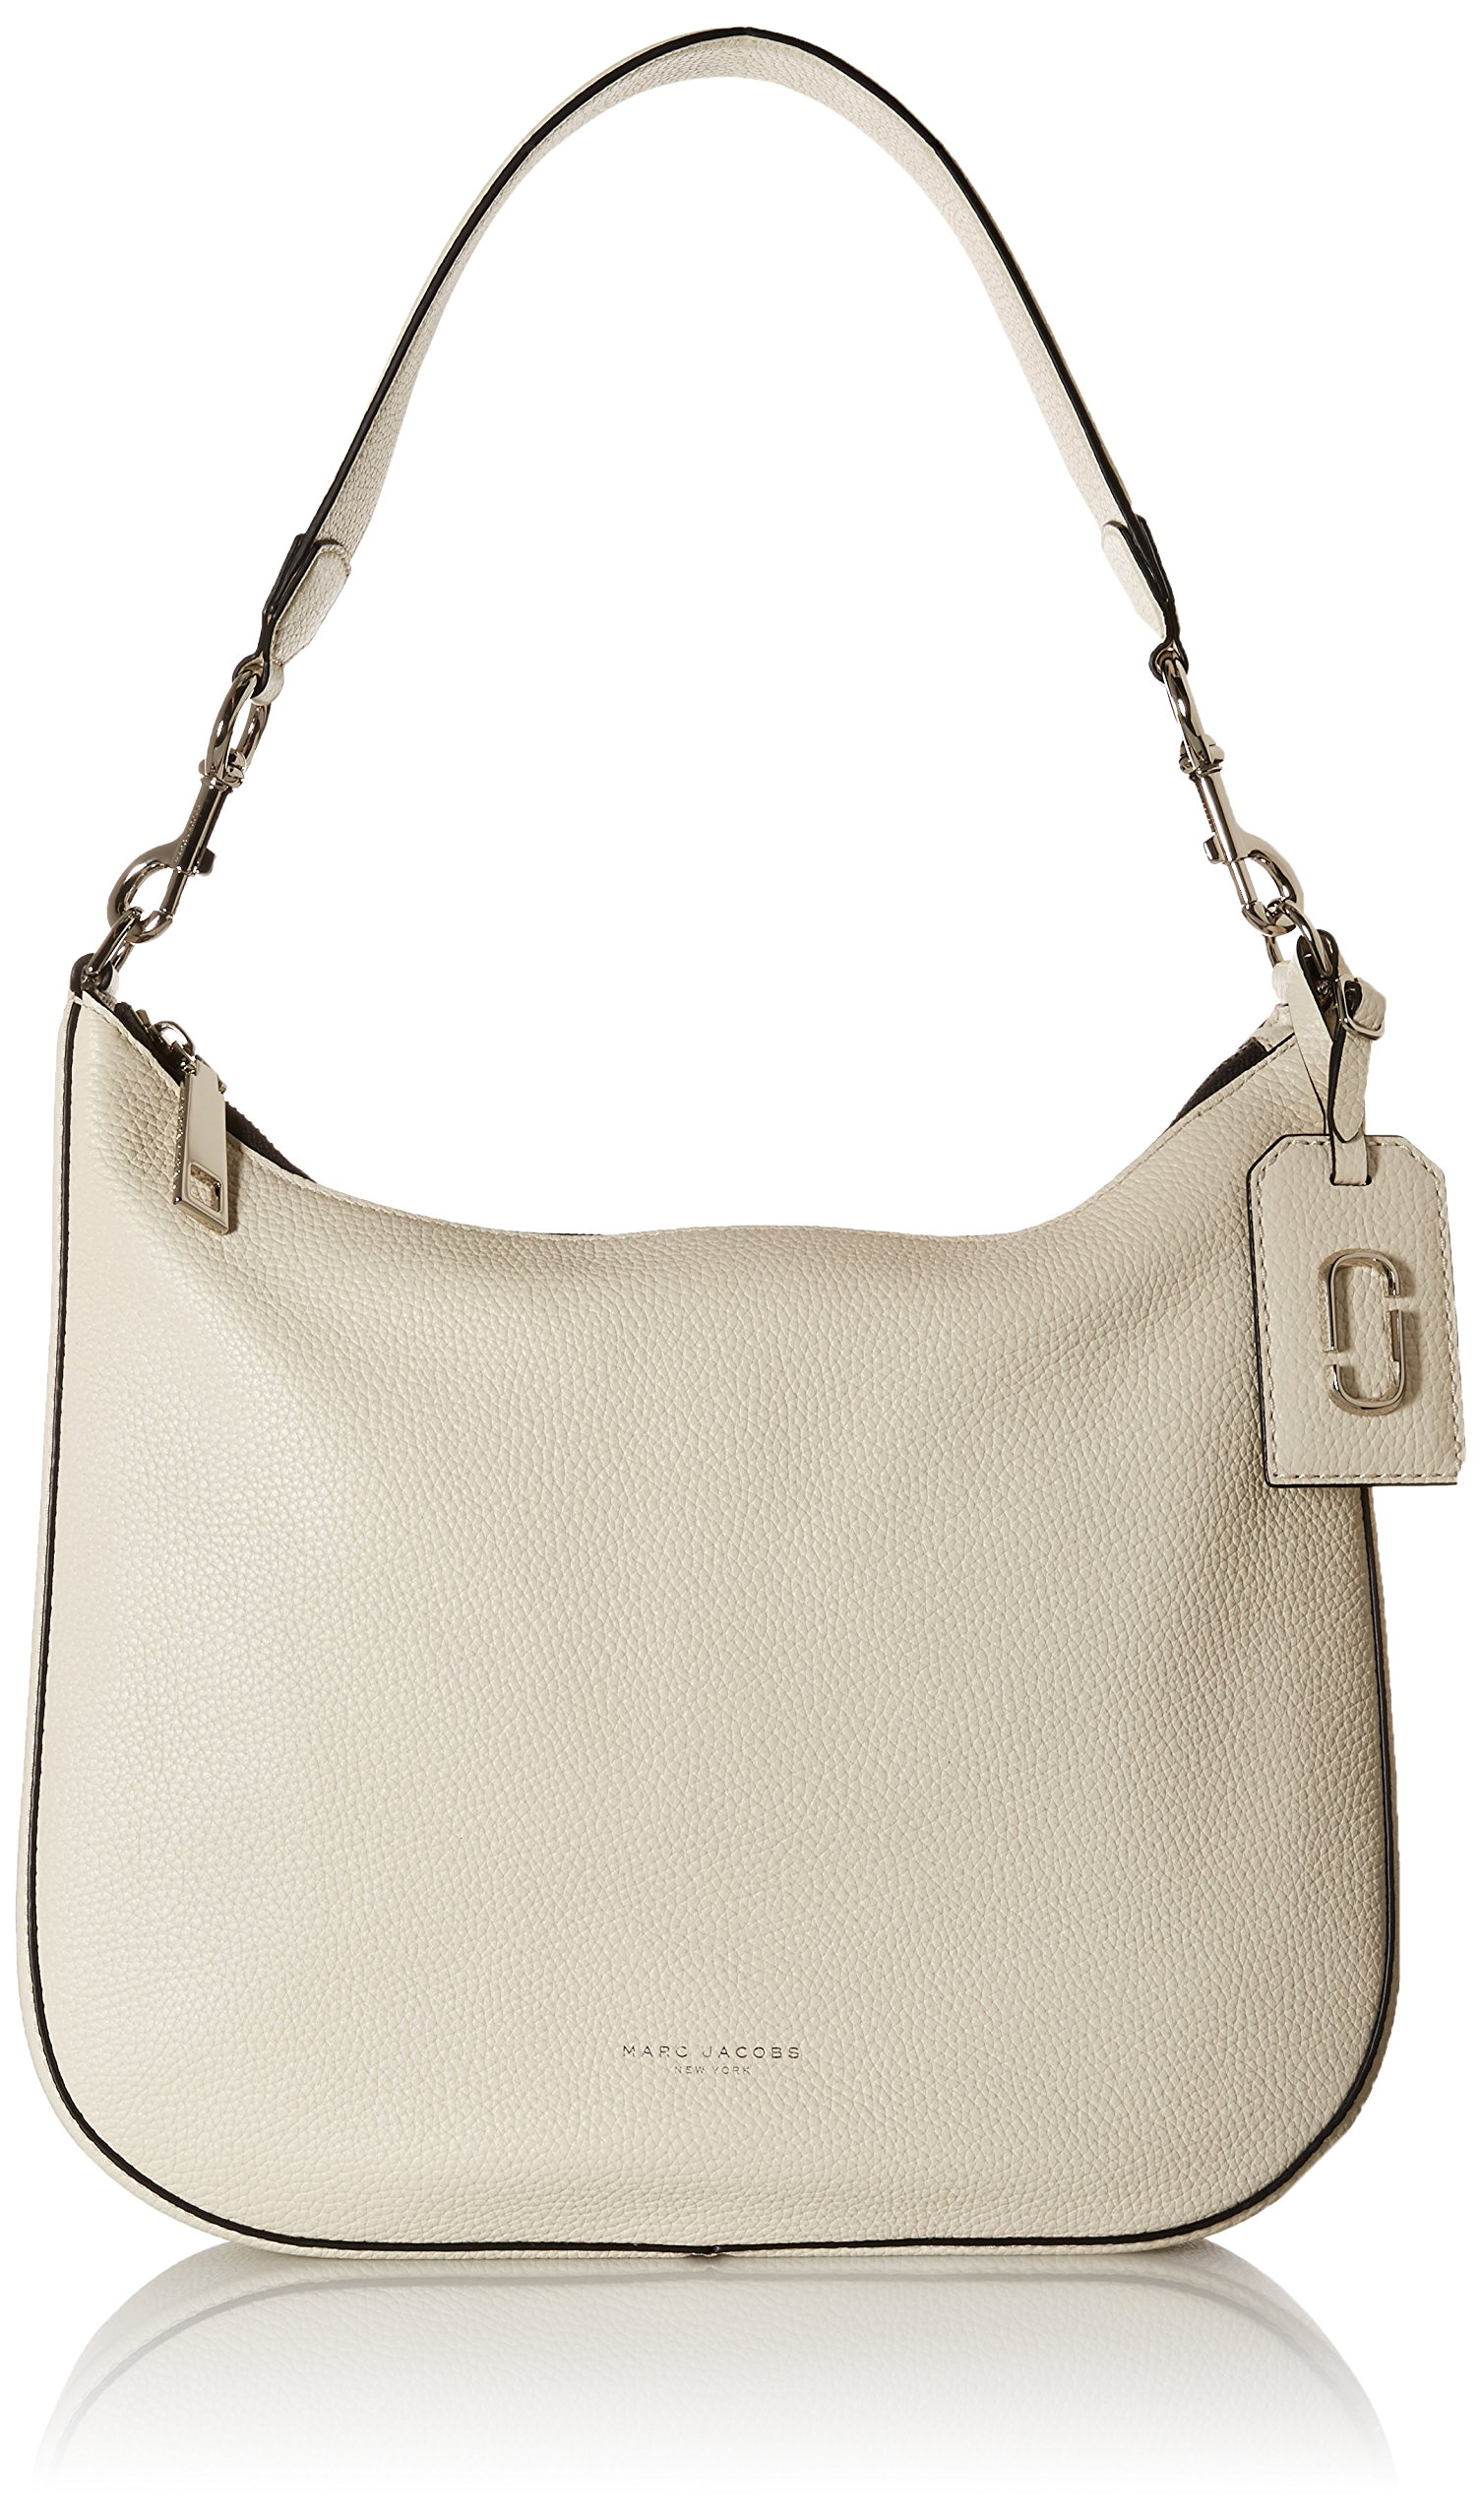 Marc Jacobs Gotham City Hobo Shoulder Bag, Off White, One Size by Marc Jacobs